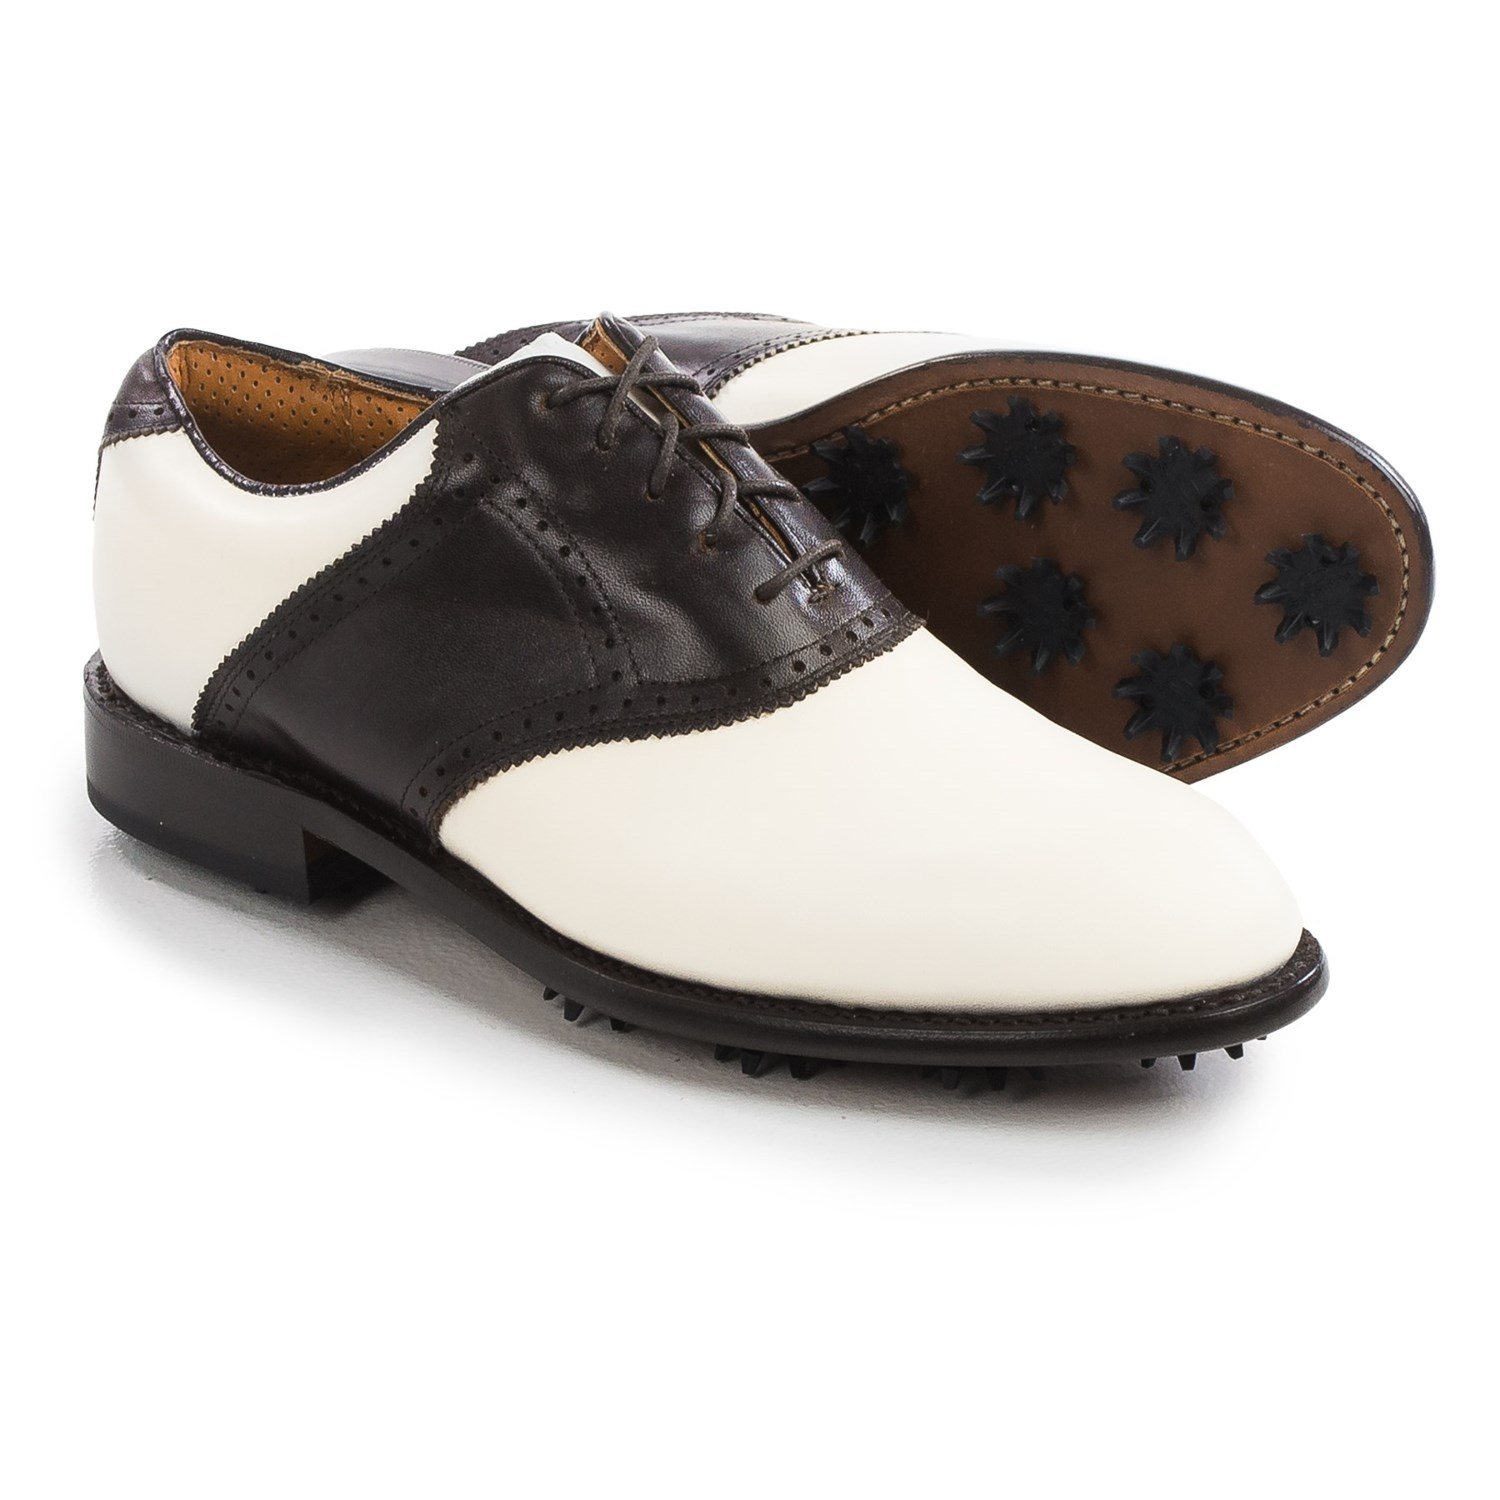 Justin Golf Shoes Review